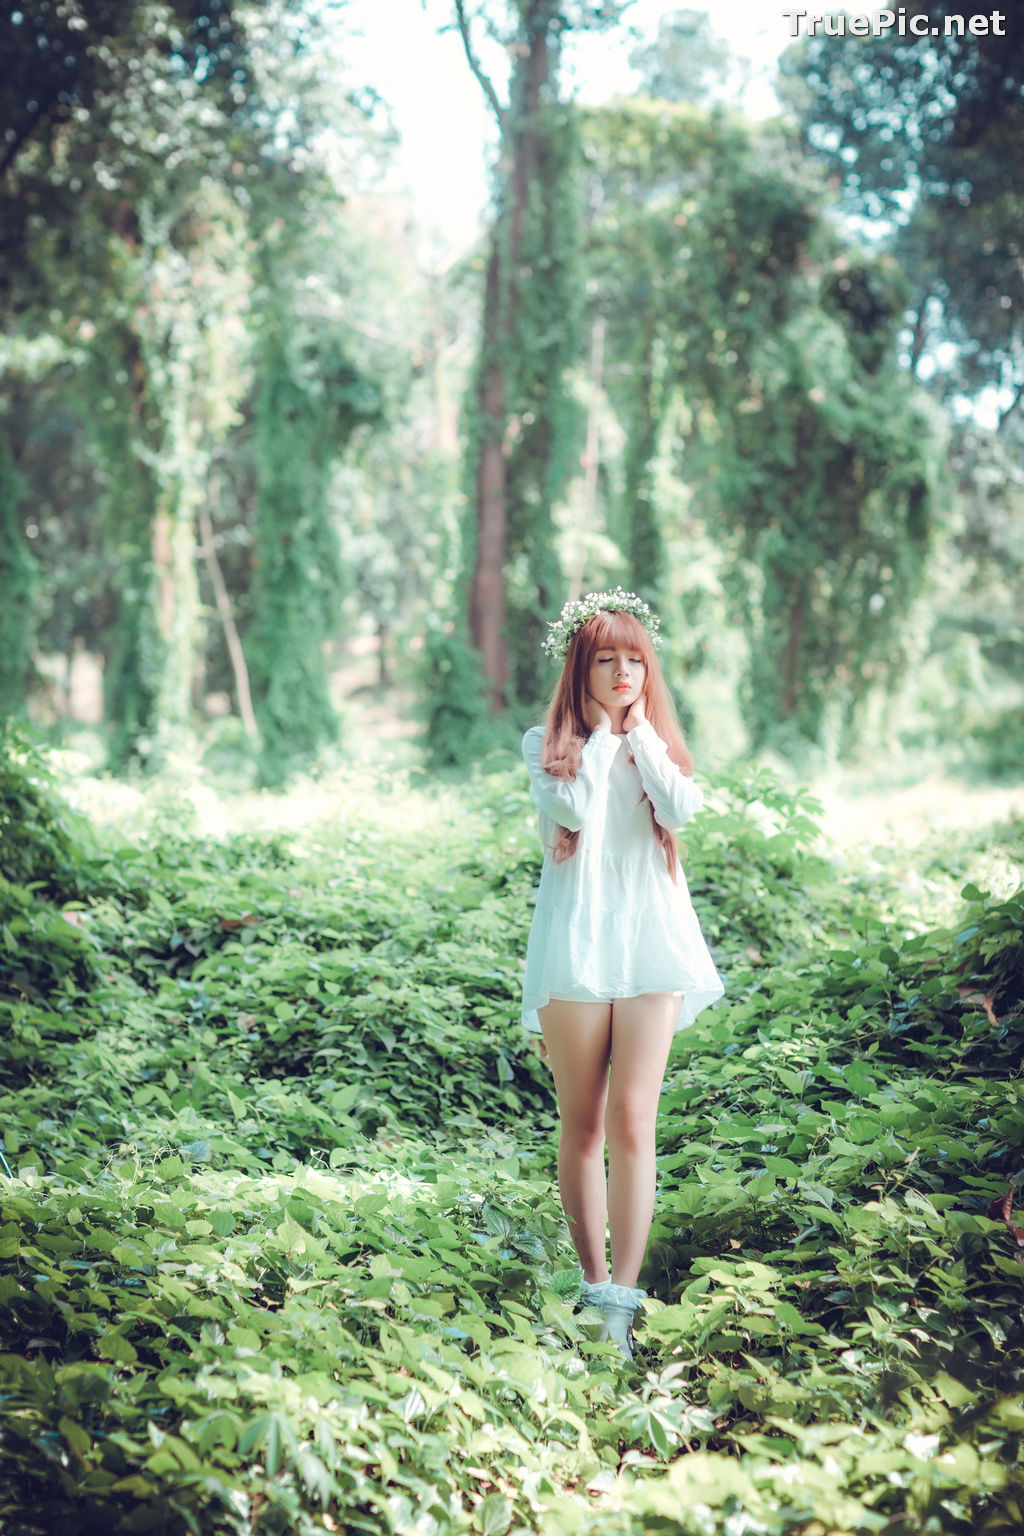 Image Vietnamese Hot Girl - Le Ly Lan Huong - Angel Of The Forest - TruePic.net - Picture-10